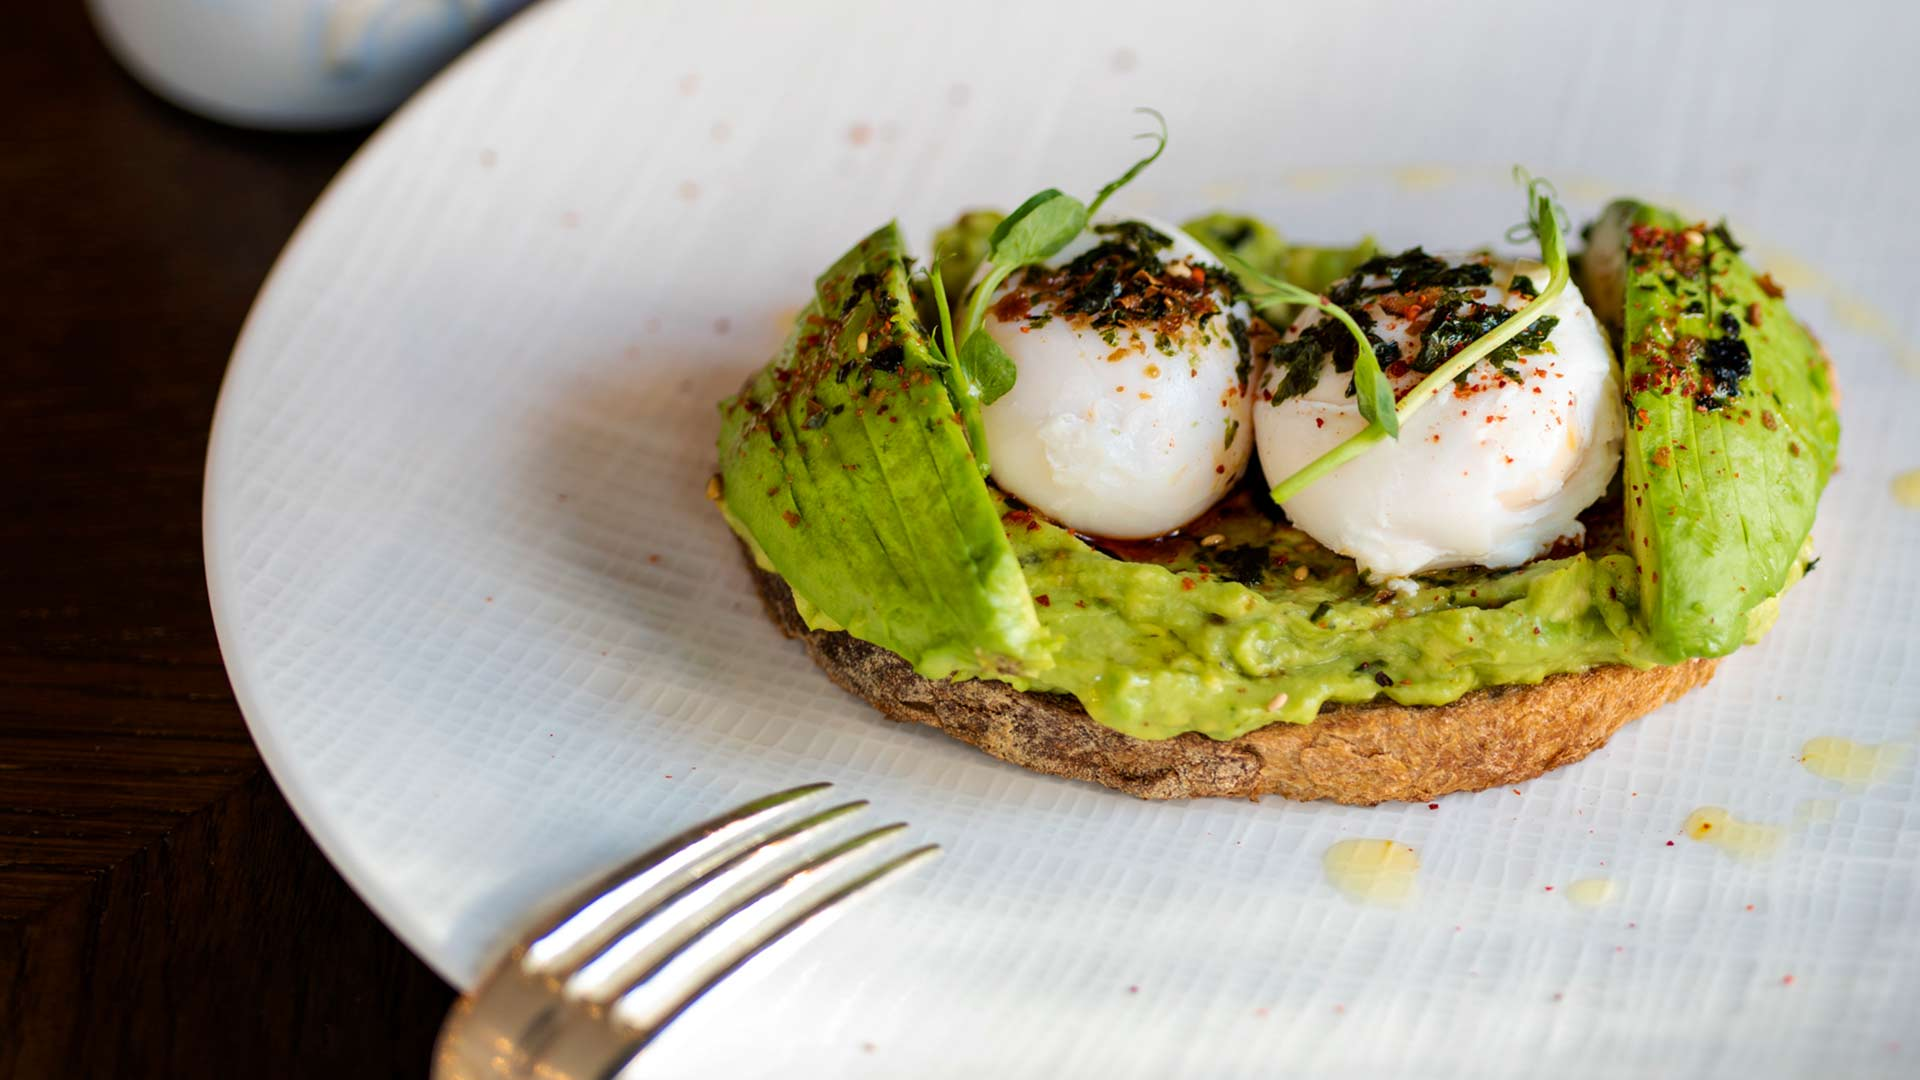 Poached-brown-eggs-Hass-avocado-furikake-sourdough-toast-v1920x1080